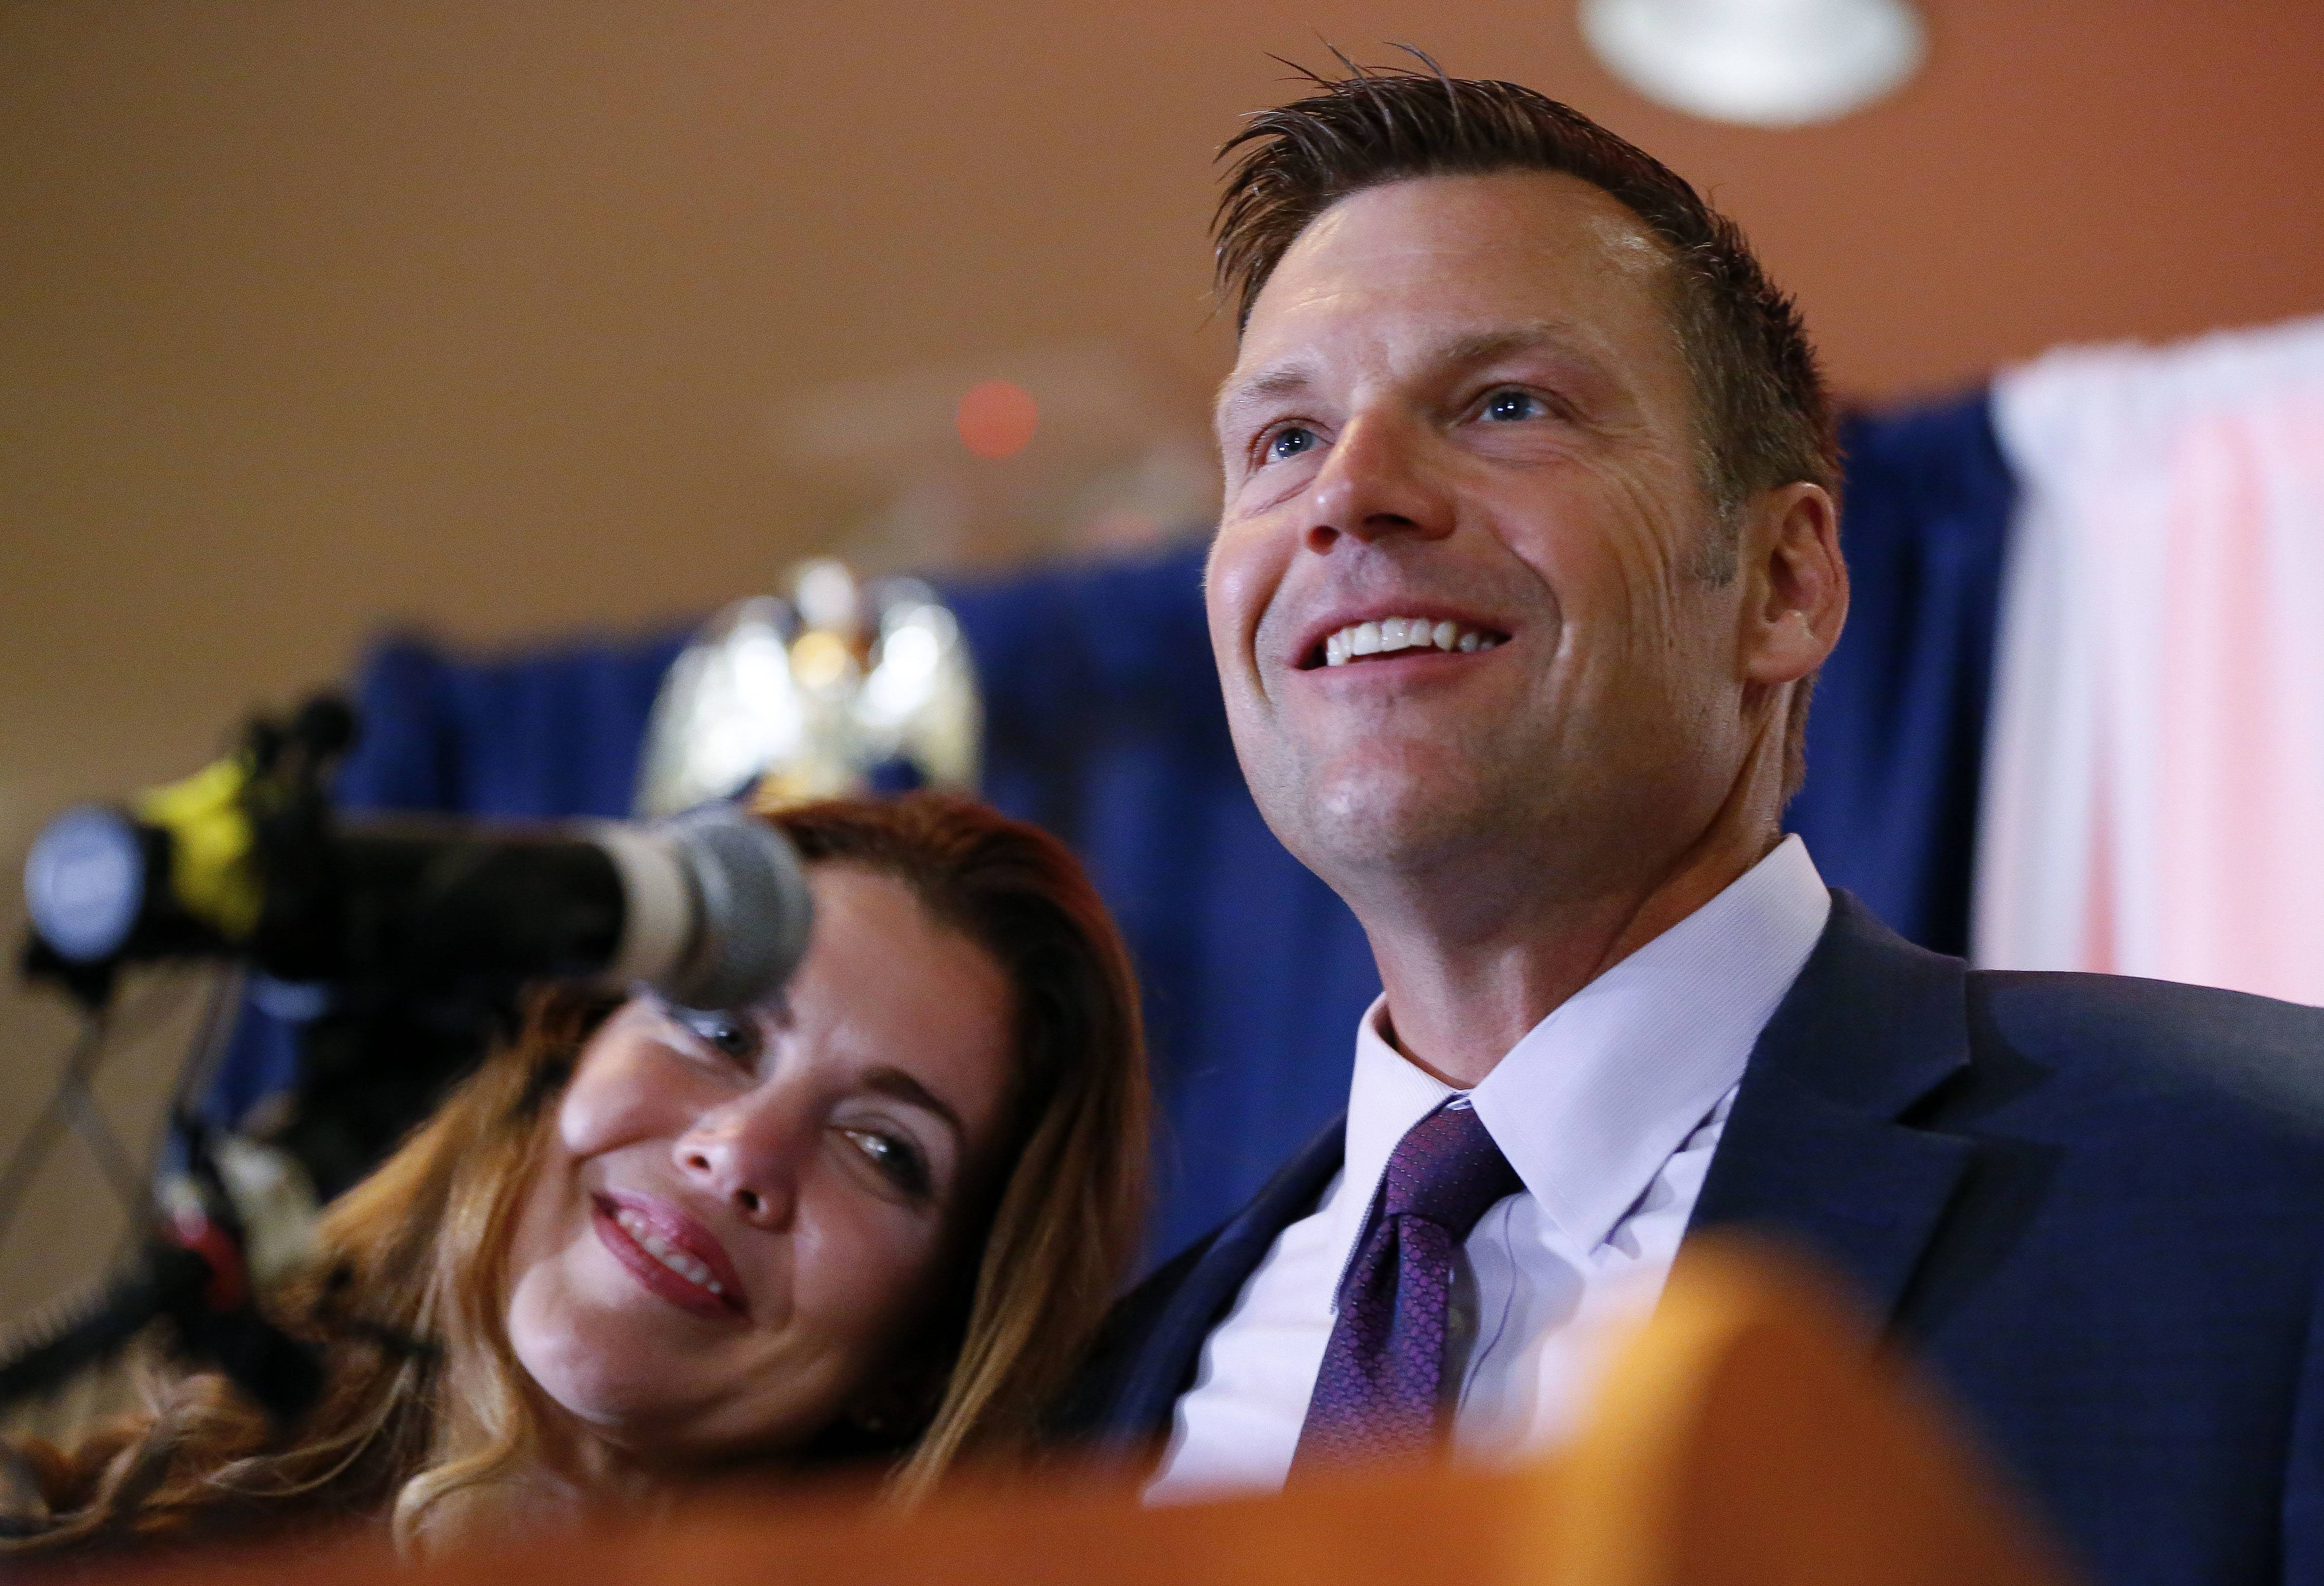 Kansas Republican gubernatorial candidate Kris Kobach and his wife, Heather, take the stage to thank their supporters and send them home for the night after problems with polls in Johnson County, Kan., delayed the final results until the early morning on Wednesday, Aug. 8, 2018, at the Capitol Plaza Hotel in Topeka, Kan. (Chris Neal/The Topeka Capital-Journal via AP)